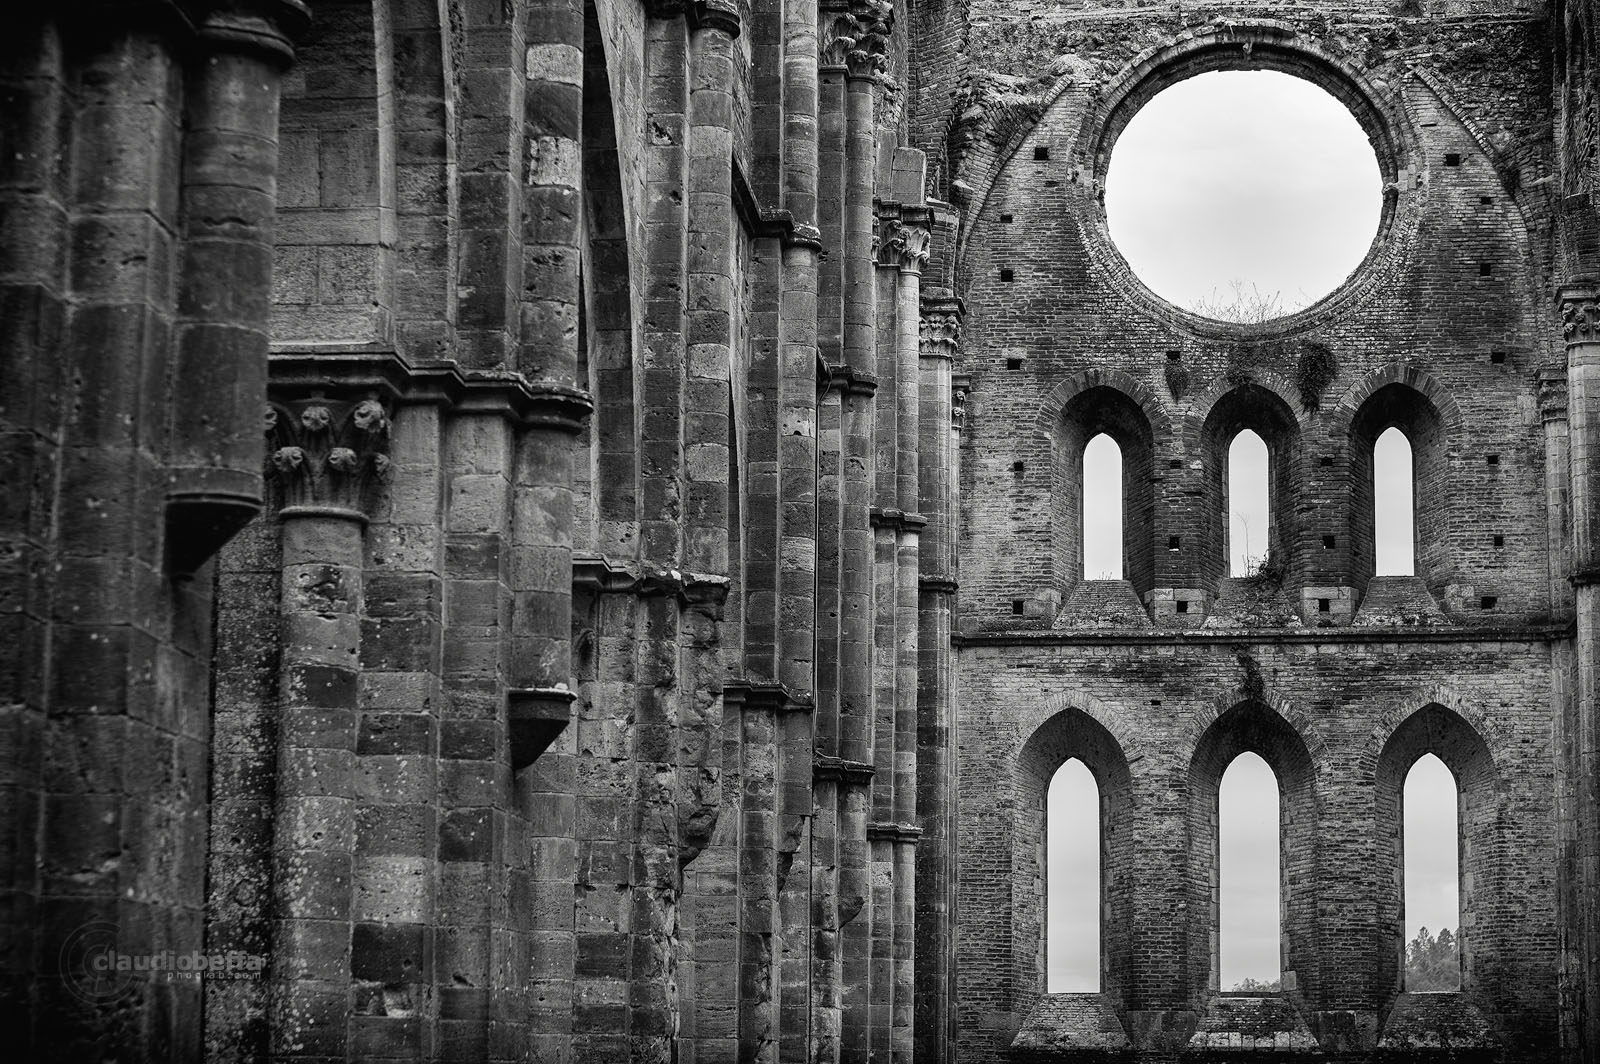 San Galgano, Abbey, Nave, Apse, Rose, Windows, Layers, Capitals, Arches, Ruin, Tuscany, Italy, Nature, History, Architecture, abbey of san galgano